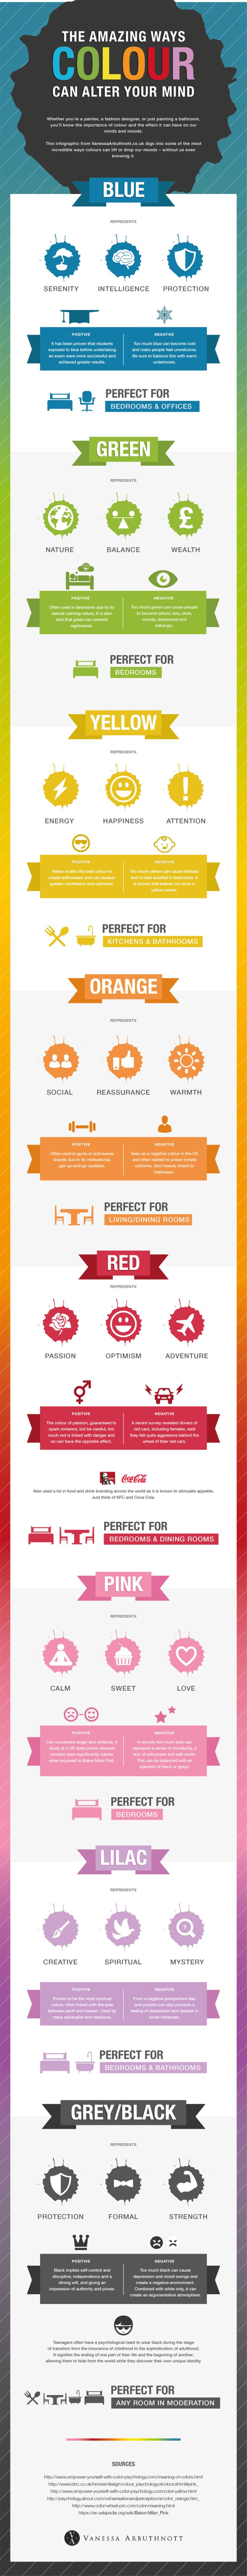 Color theory online games - The Amazing Ways Colours Can Alter Your Mind Infographic Webdesign